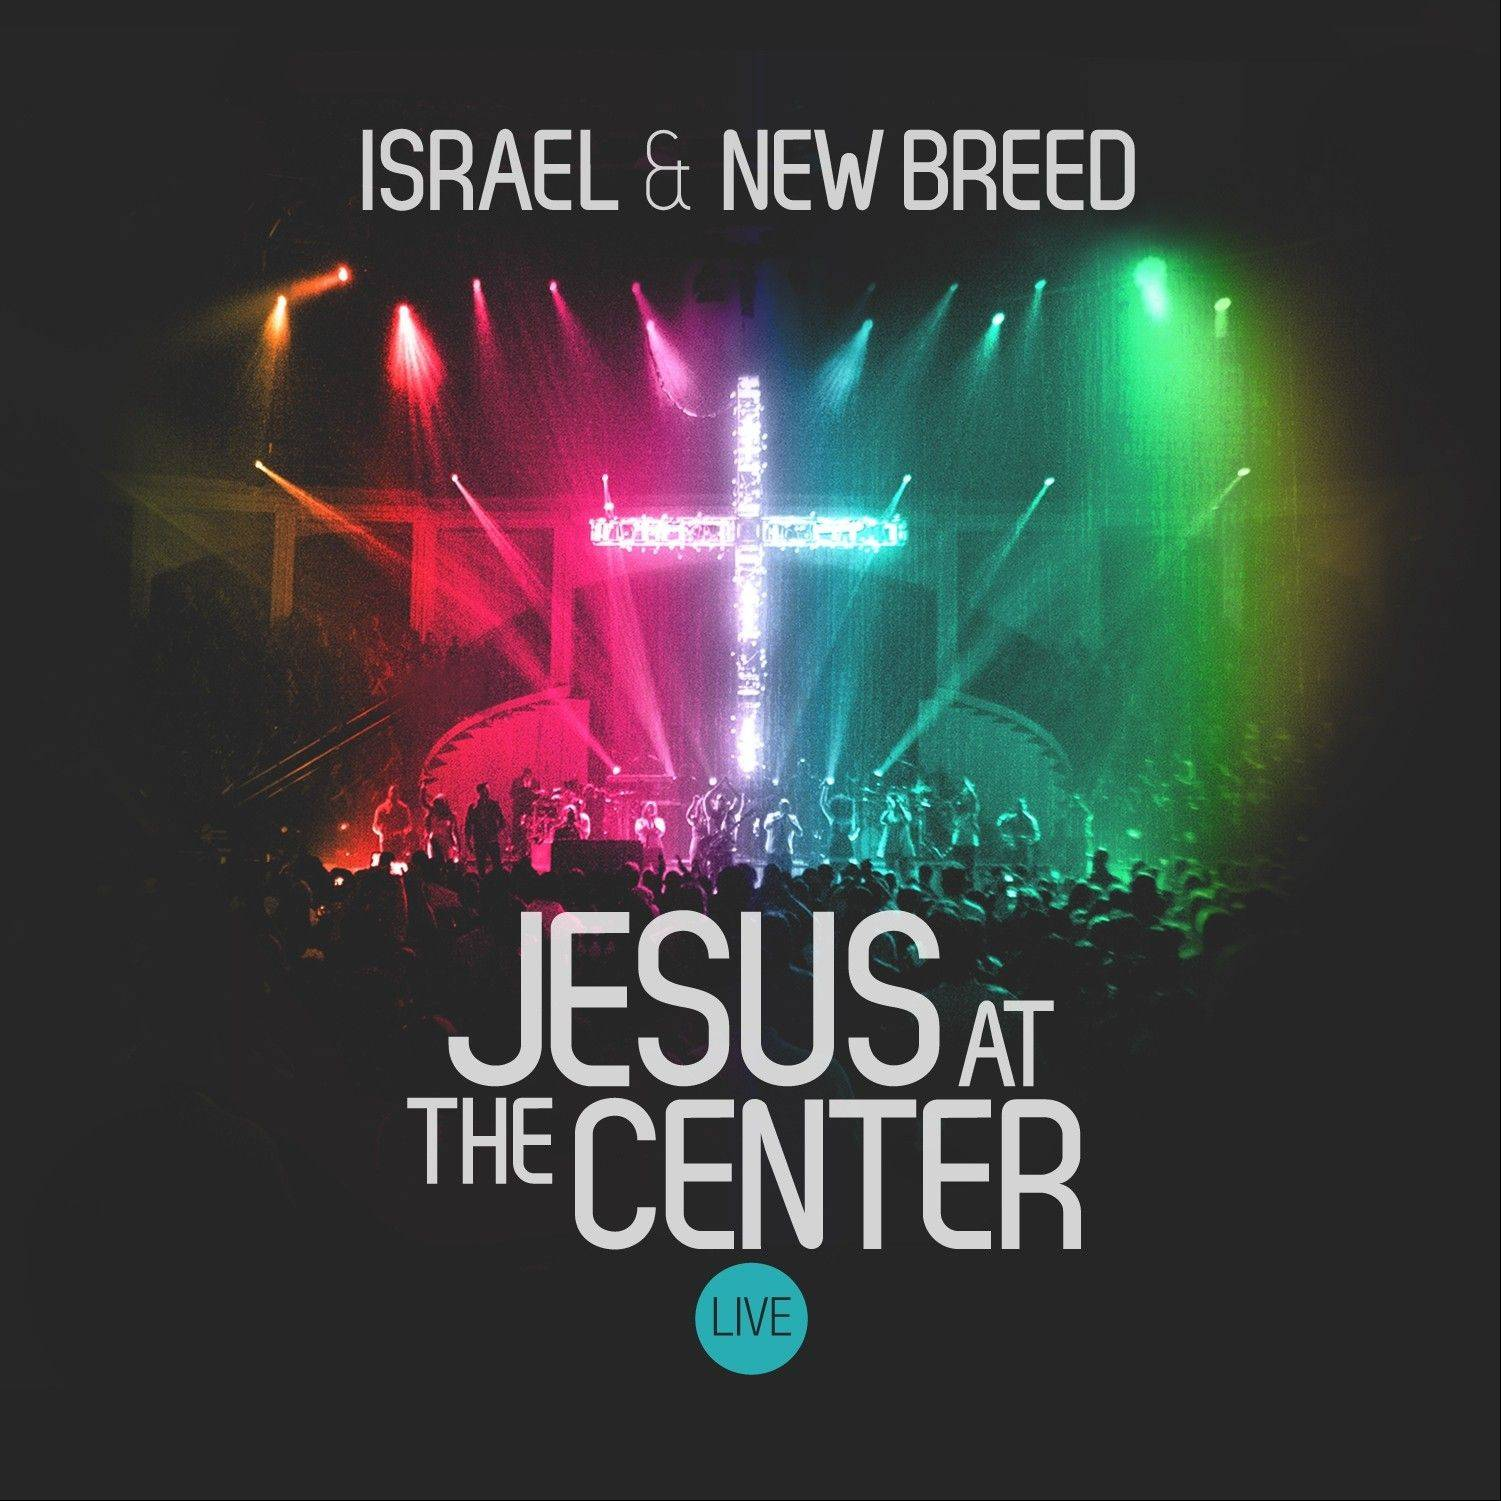 """Jesus at the Center"" by Israel & New Breed"